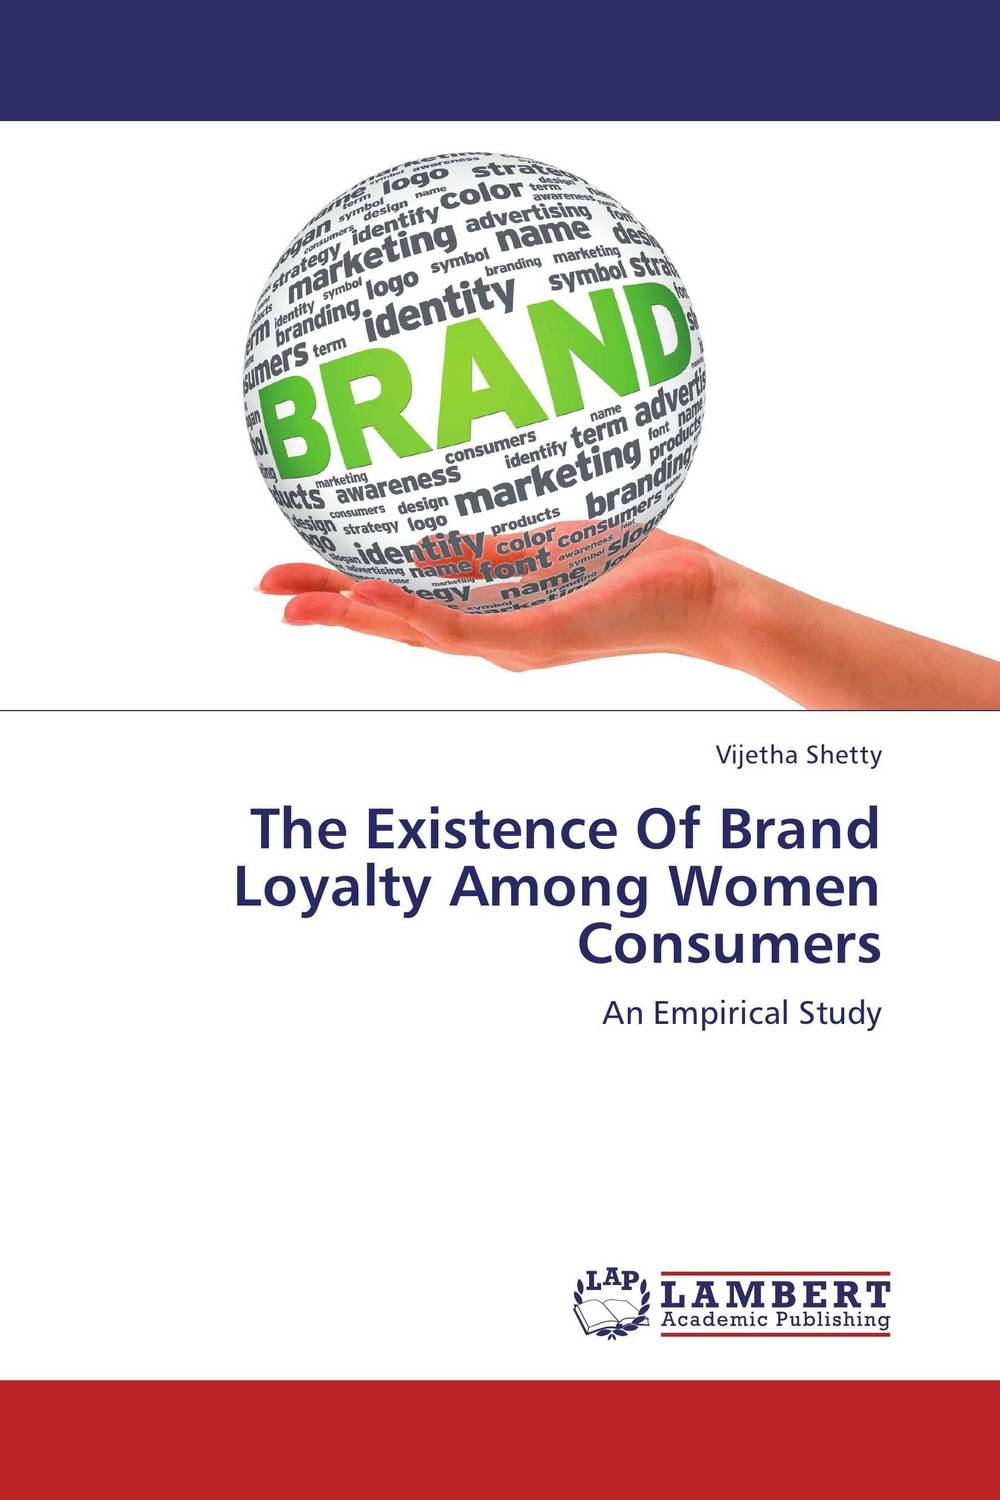 The Existence Of Brand Loyalty Among Women Consumers charles chase w bricks matter the role of supply chains in building market driven differentiation